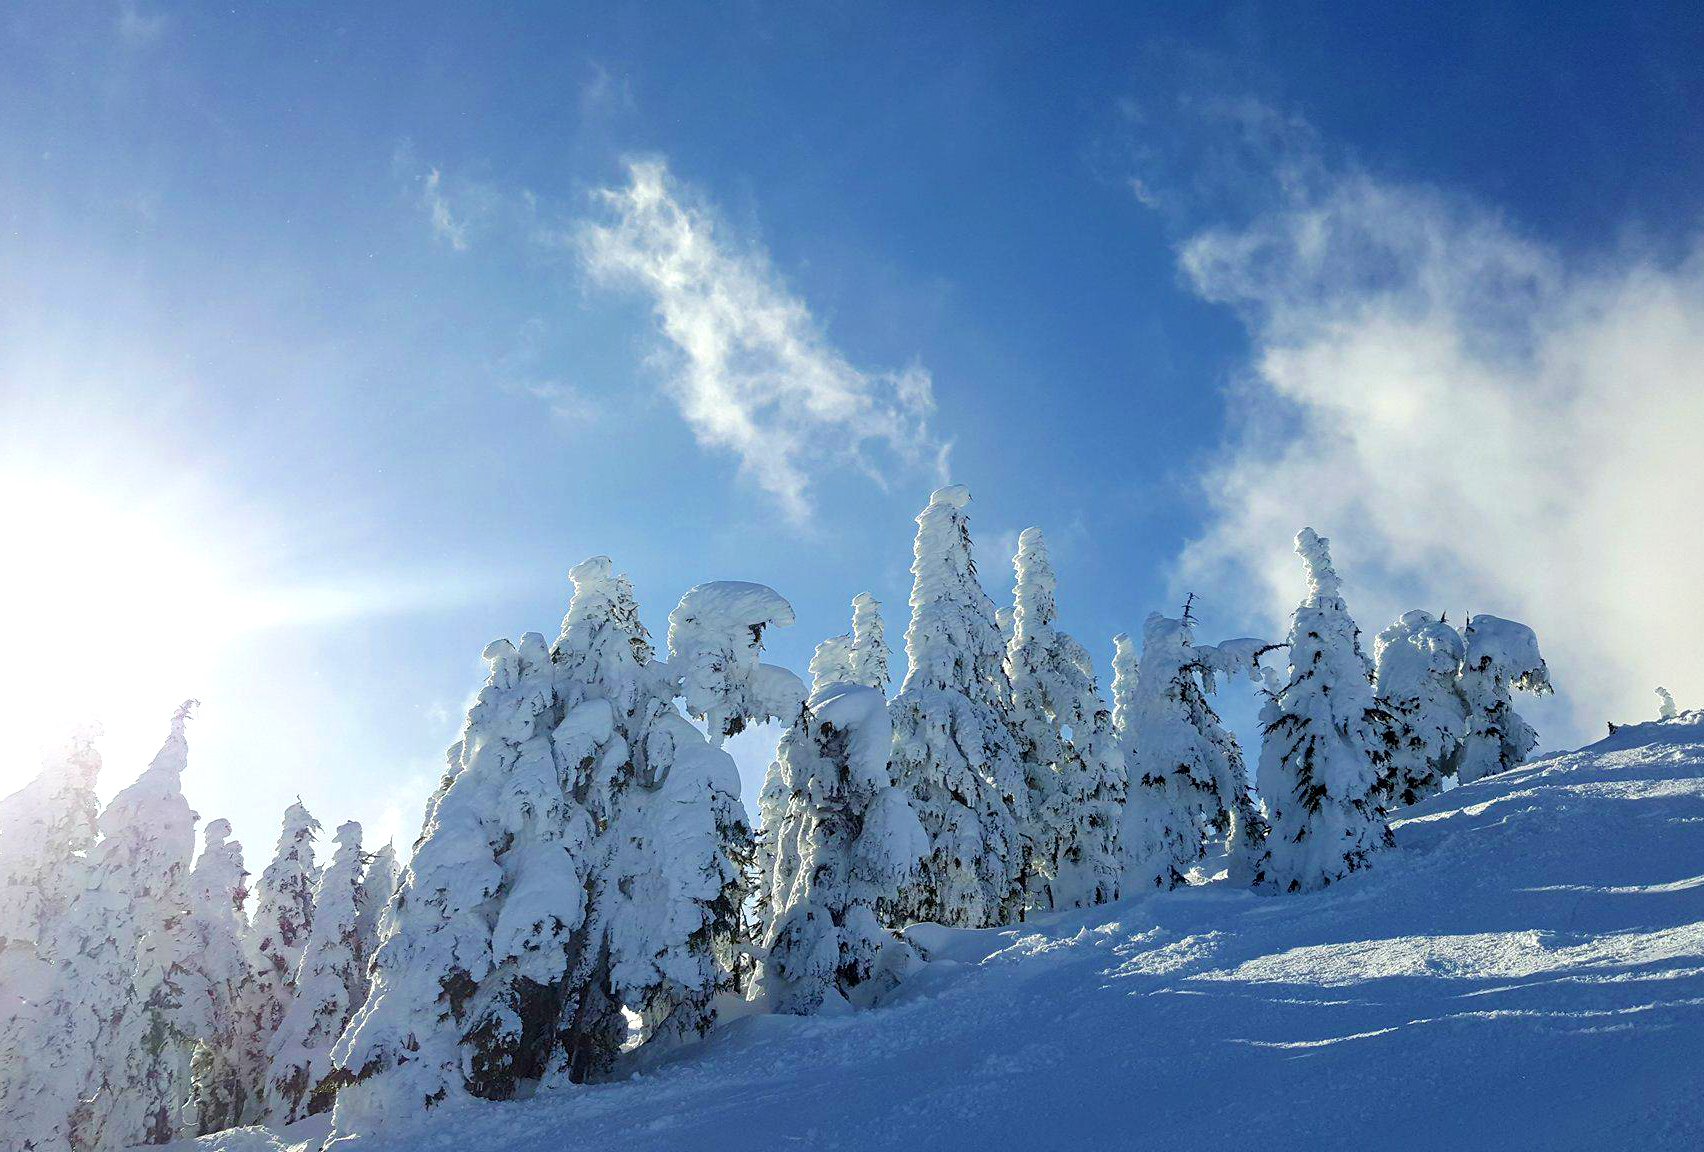 mount washington alpine resort victoria bc skiing vancouver island